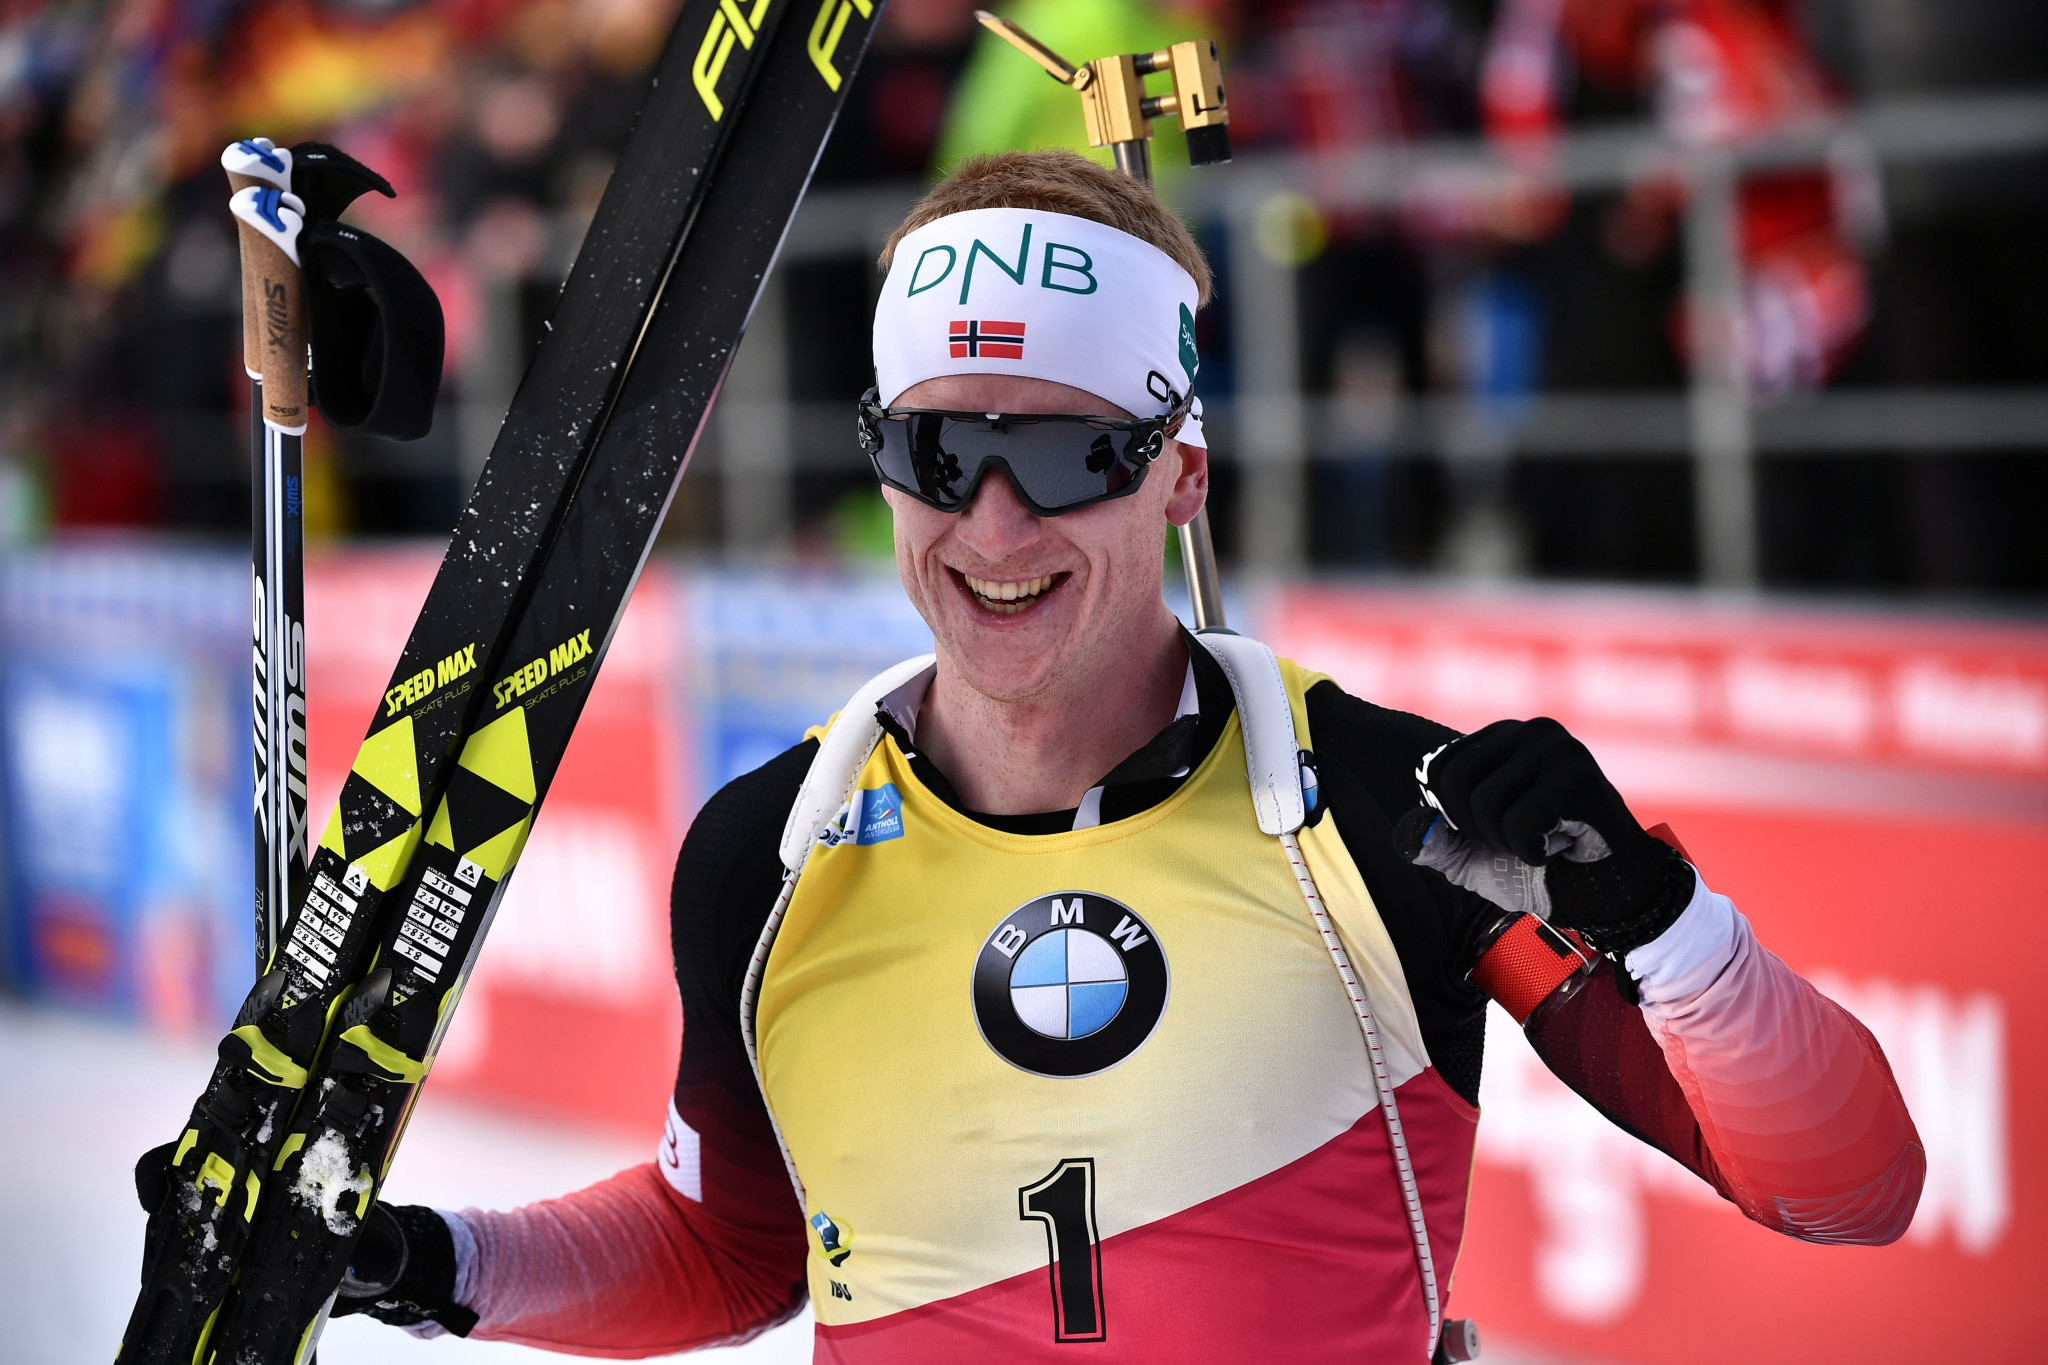 Bø collects 11th victory of season with another win at IBU World Cup in Antholz